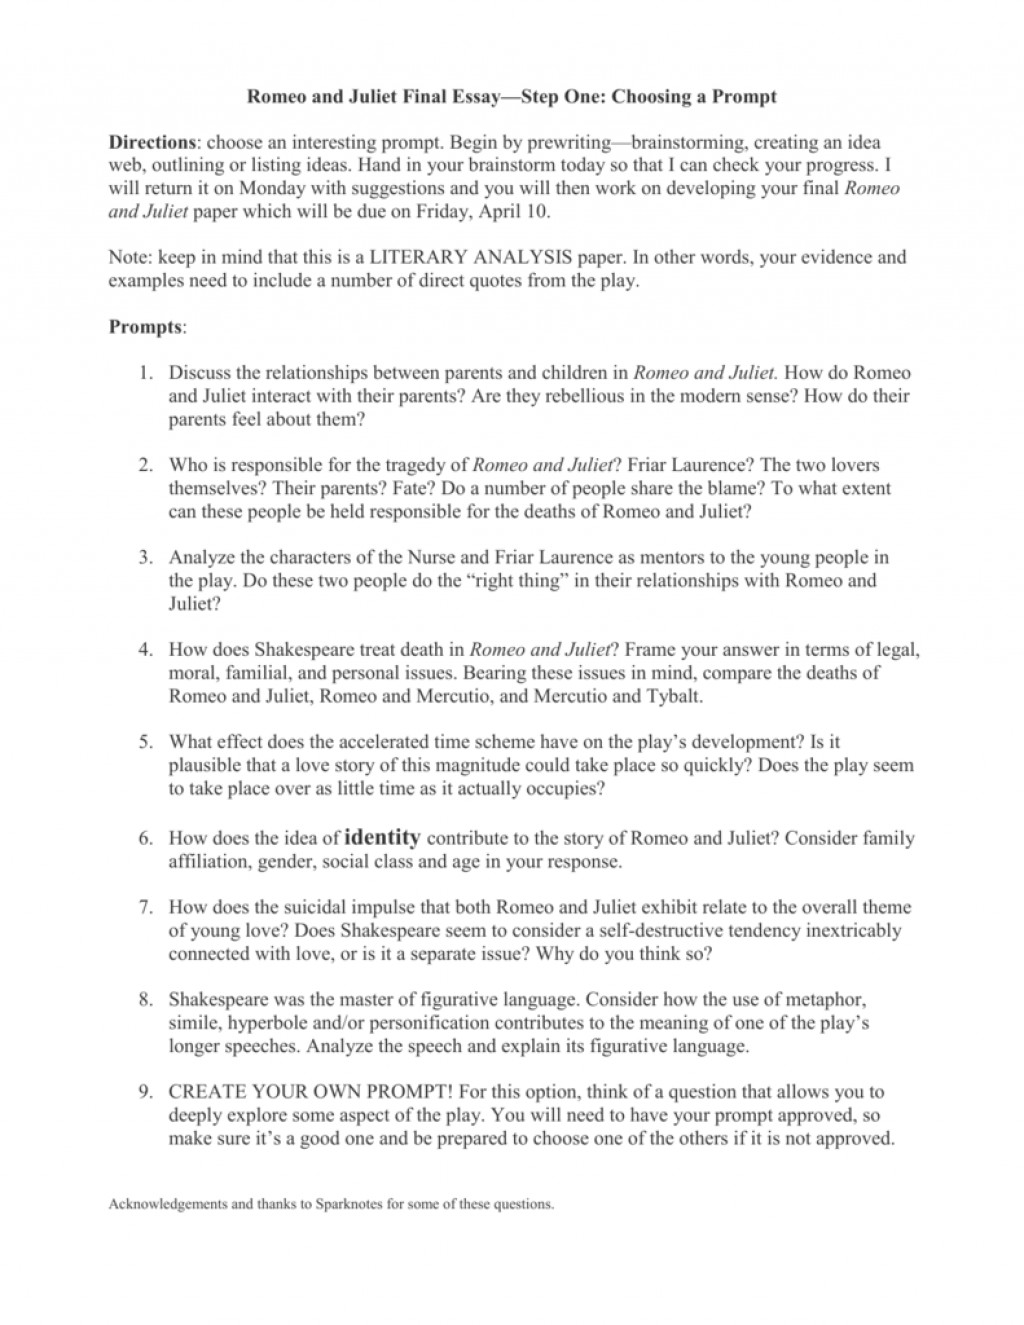 006 Essay Example 007794597 2 Romeo And Juliet Fantastic Prompts Prompt Who Is To Blame Questions Writing Large